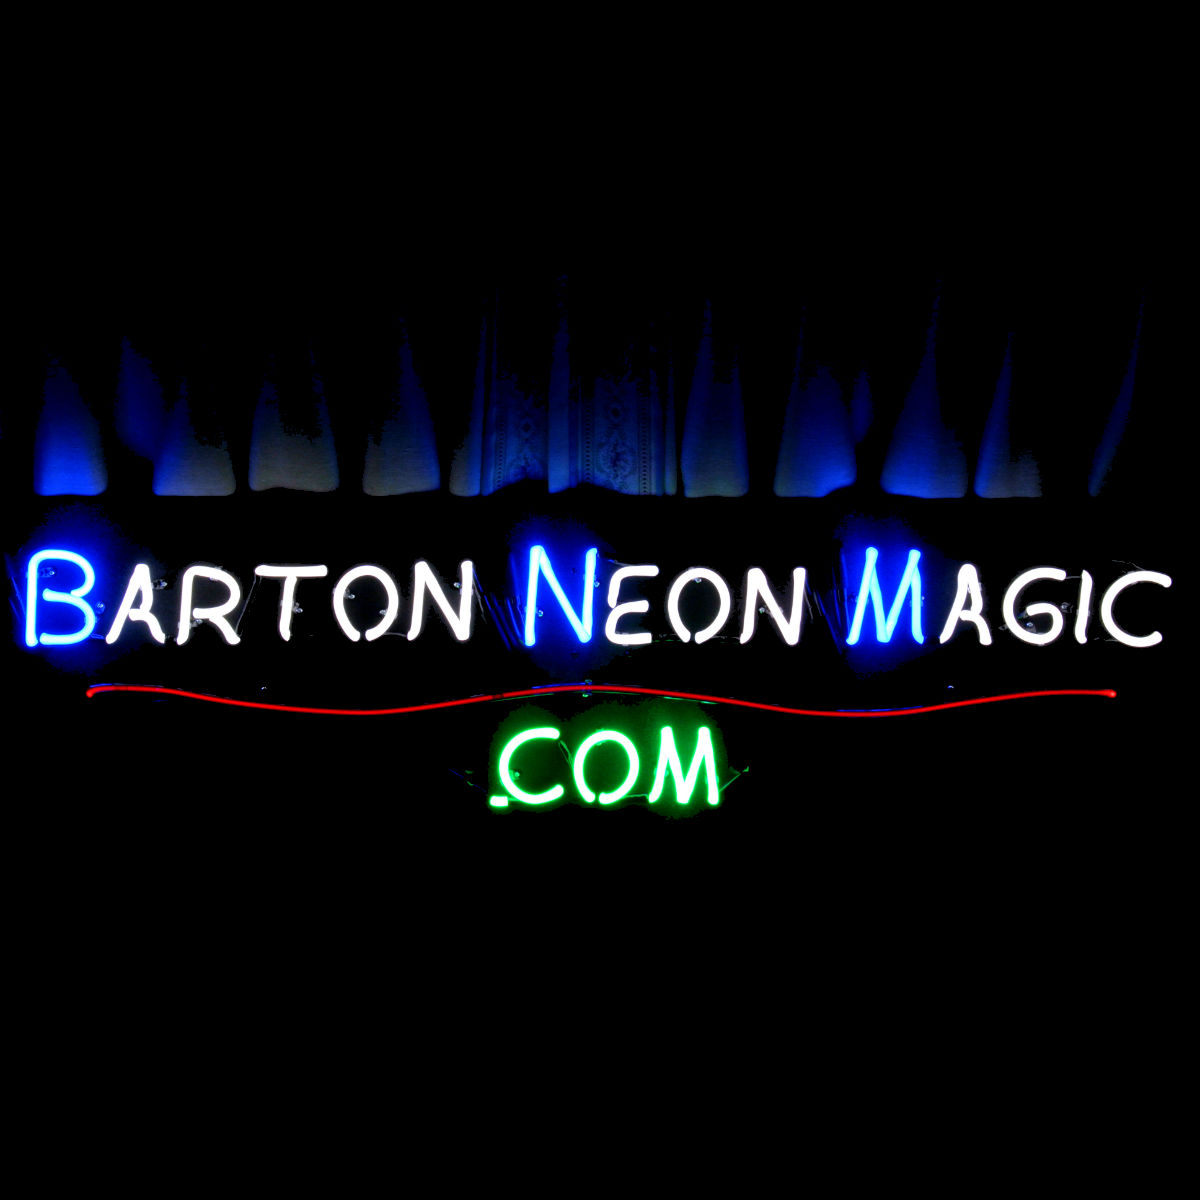 Custom Commercial Neon Signs, Neon Chandeliers, Neon Artworks by John Barton - BartonNeonMagic.com